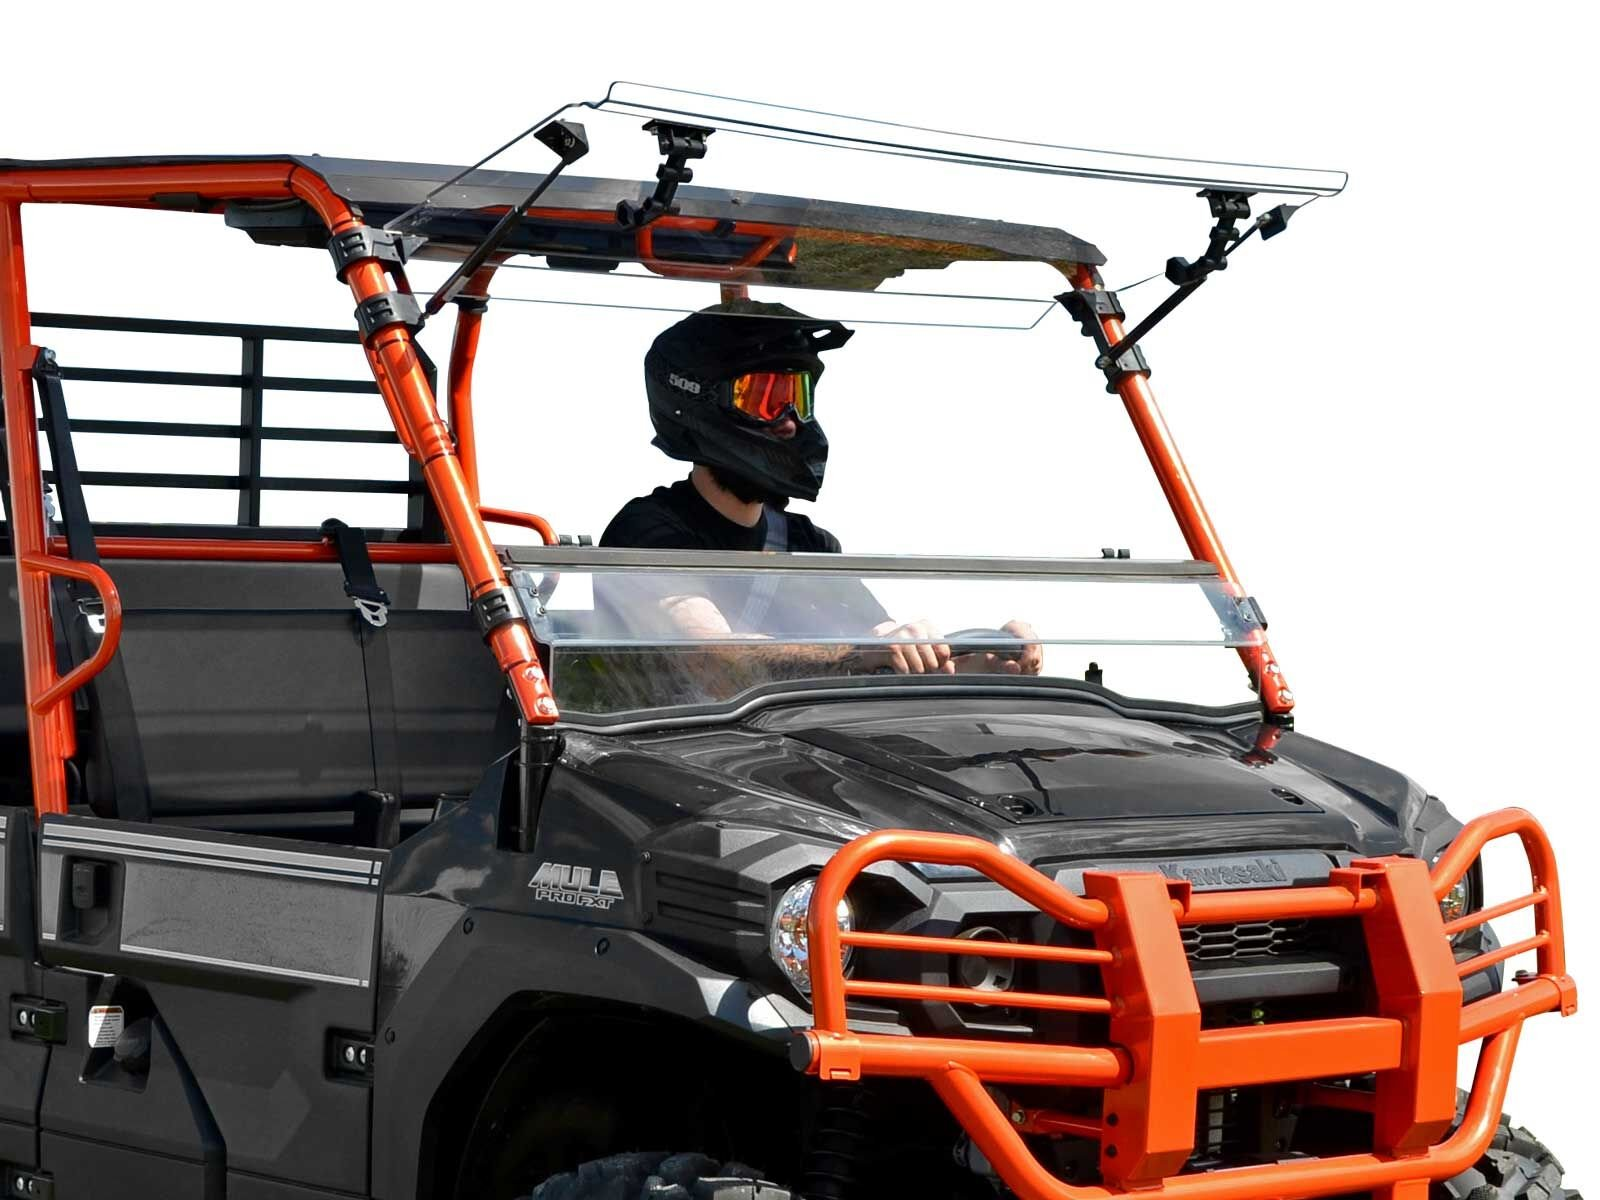 SuperATV Heavy Duty Scratch Resistant 3-in-1 Flip Windshield for Kawasaki Mule Pro FXT / FX / DXT / DX (2015+) - Can be Set to Vented, Closed, or Open - Easy to Install! by SuperATV.com